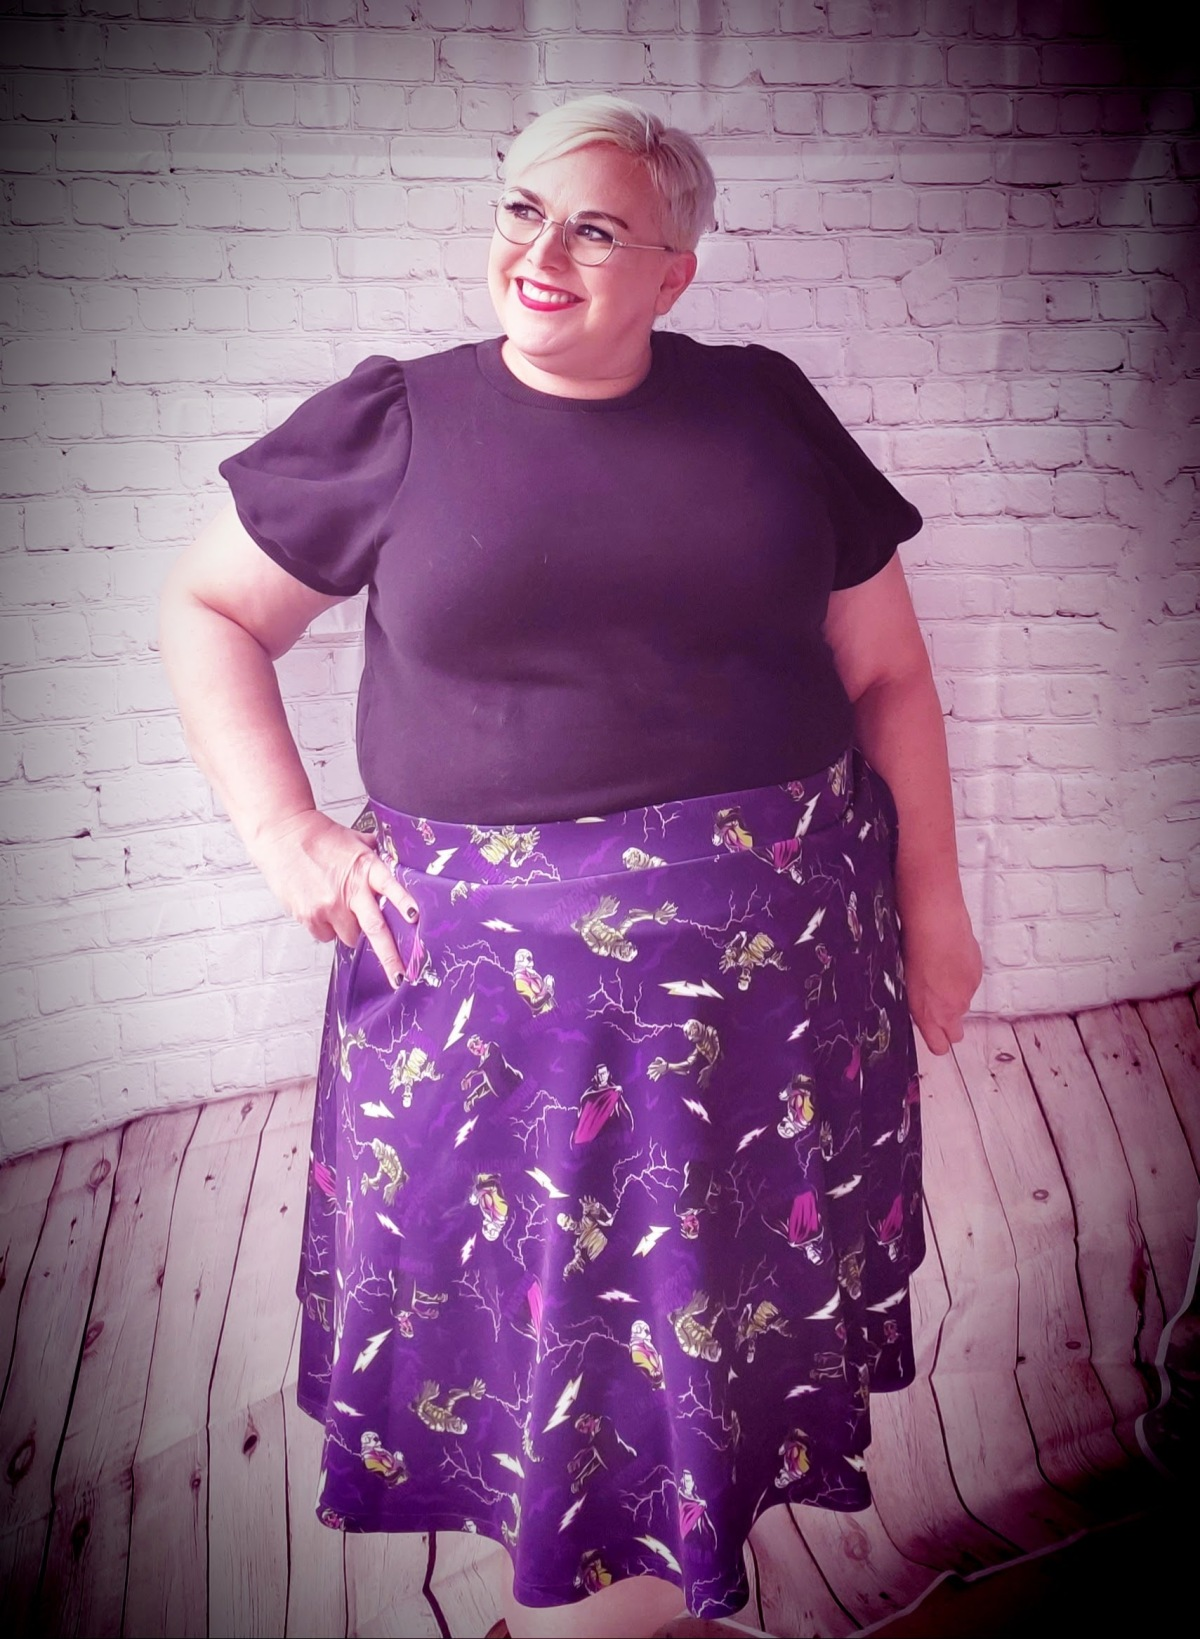 Outfit of the Day: Classic Monster Skirt from Torrid